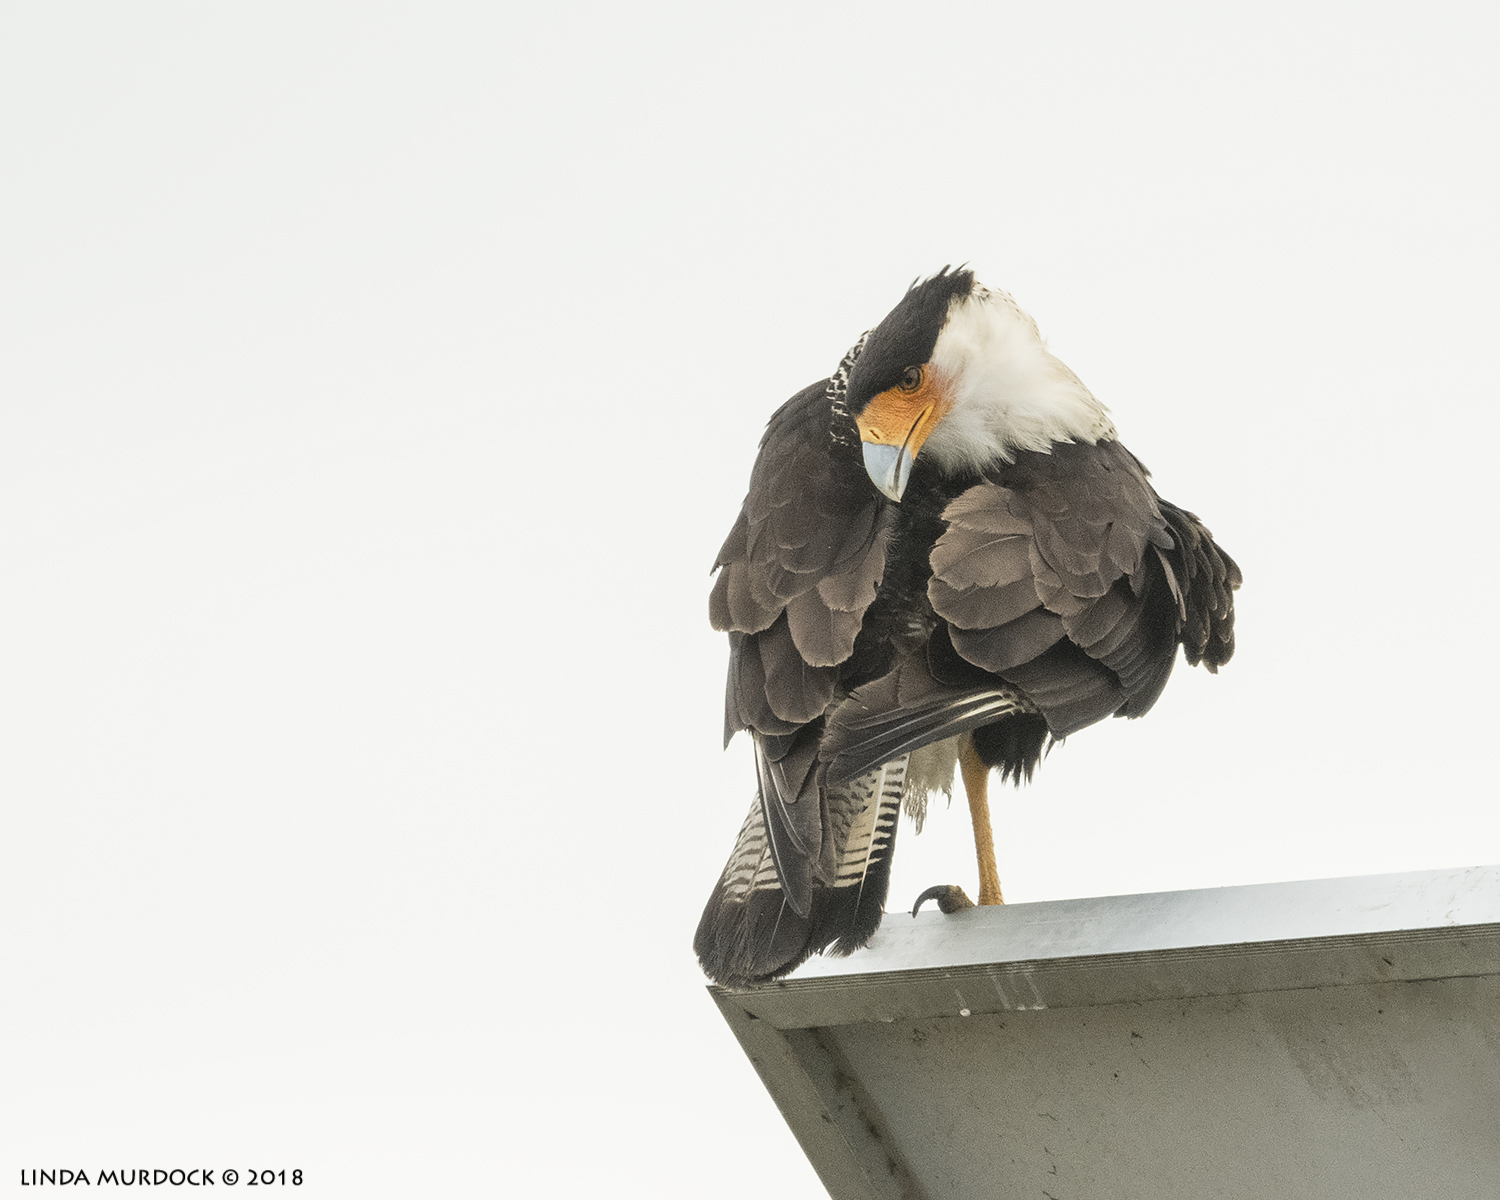 Preening  Nikon D850 with NIKKOR 500mm f/4E VR with Nikon 1.4x TC ~ 1/2500 sec f/5.6 ISO 1600; braced on truck